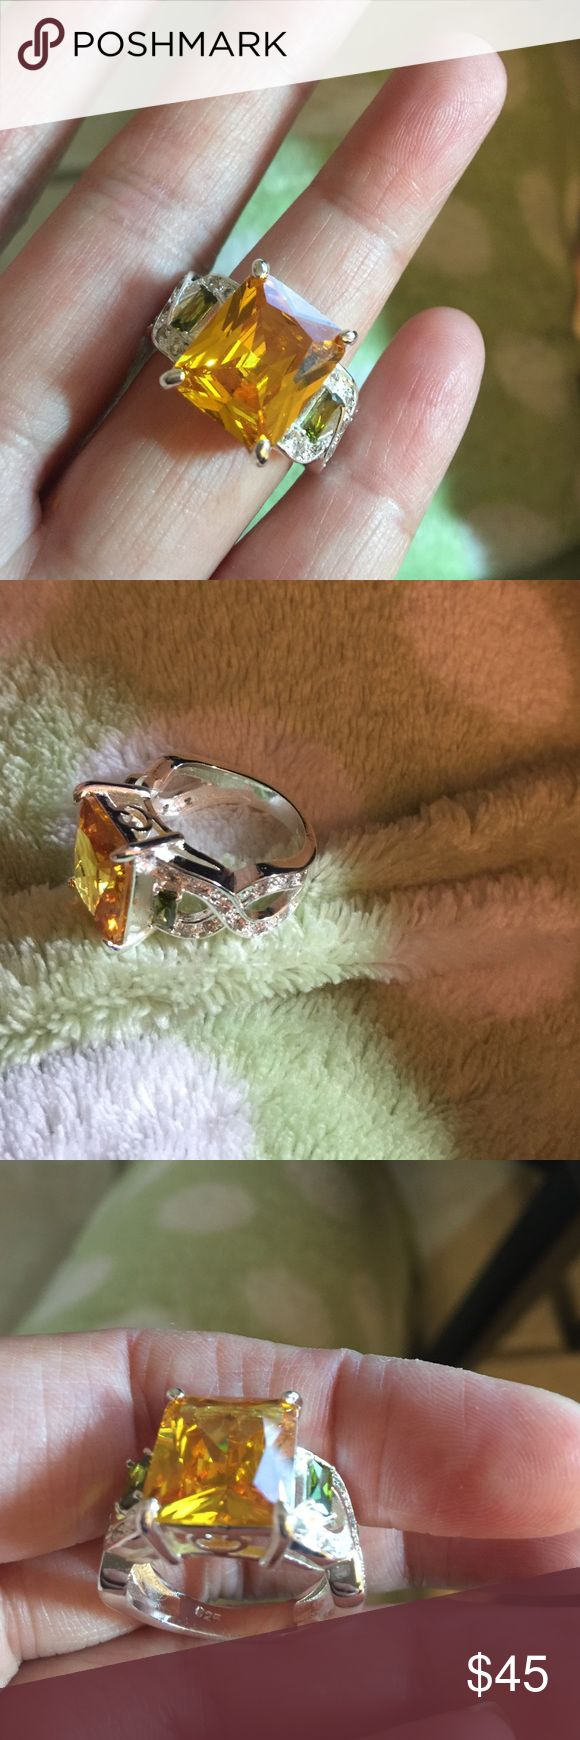 New Citrine & White Topaz Gemstone Ring Gorgeous Stamped 925 Sterling silver Citrine & Topaz Gemstone Ring, great for gift, bundle to save, fast shipping! Jewelry Rings